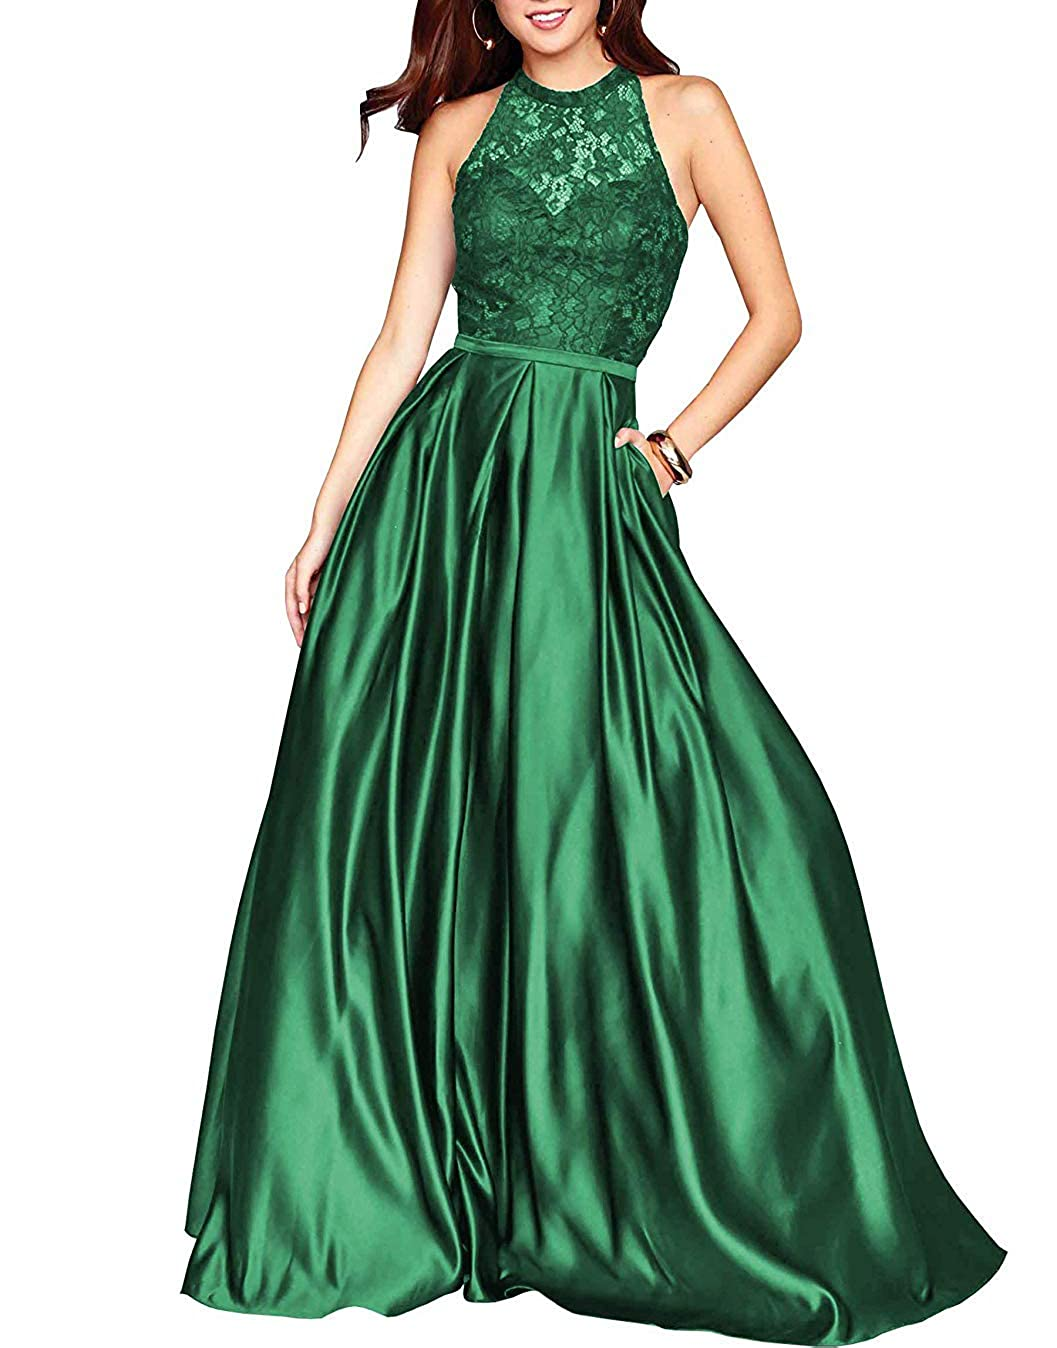 Dark Green PearlBridal Women's Halter Lace Prom Dresses Backless A Line Long Evening Formal Dress with Pockets